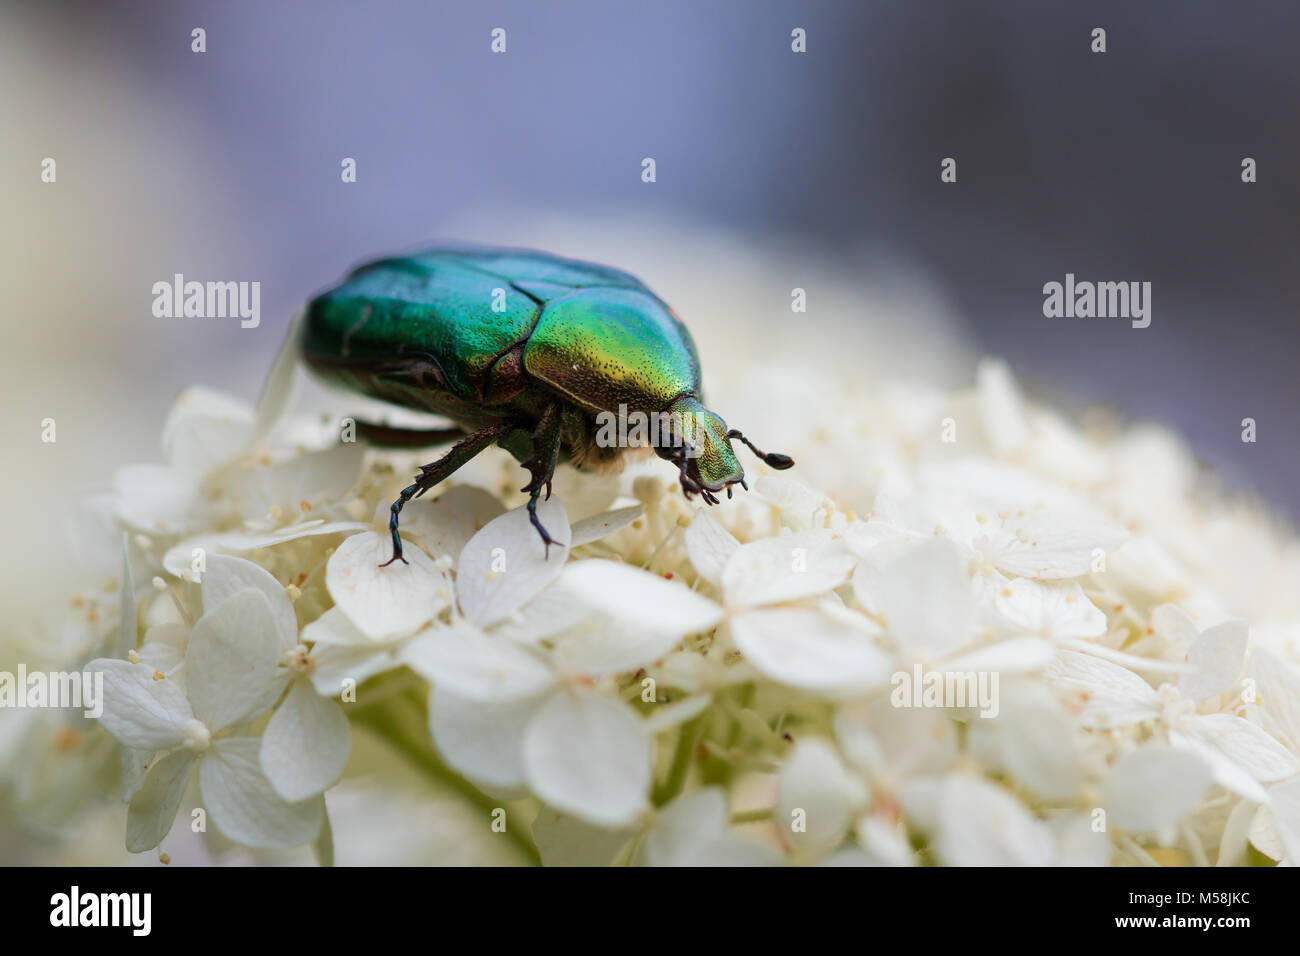 protaetia aeruginosa beetle on a flower Stock Photo